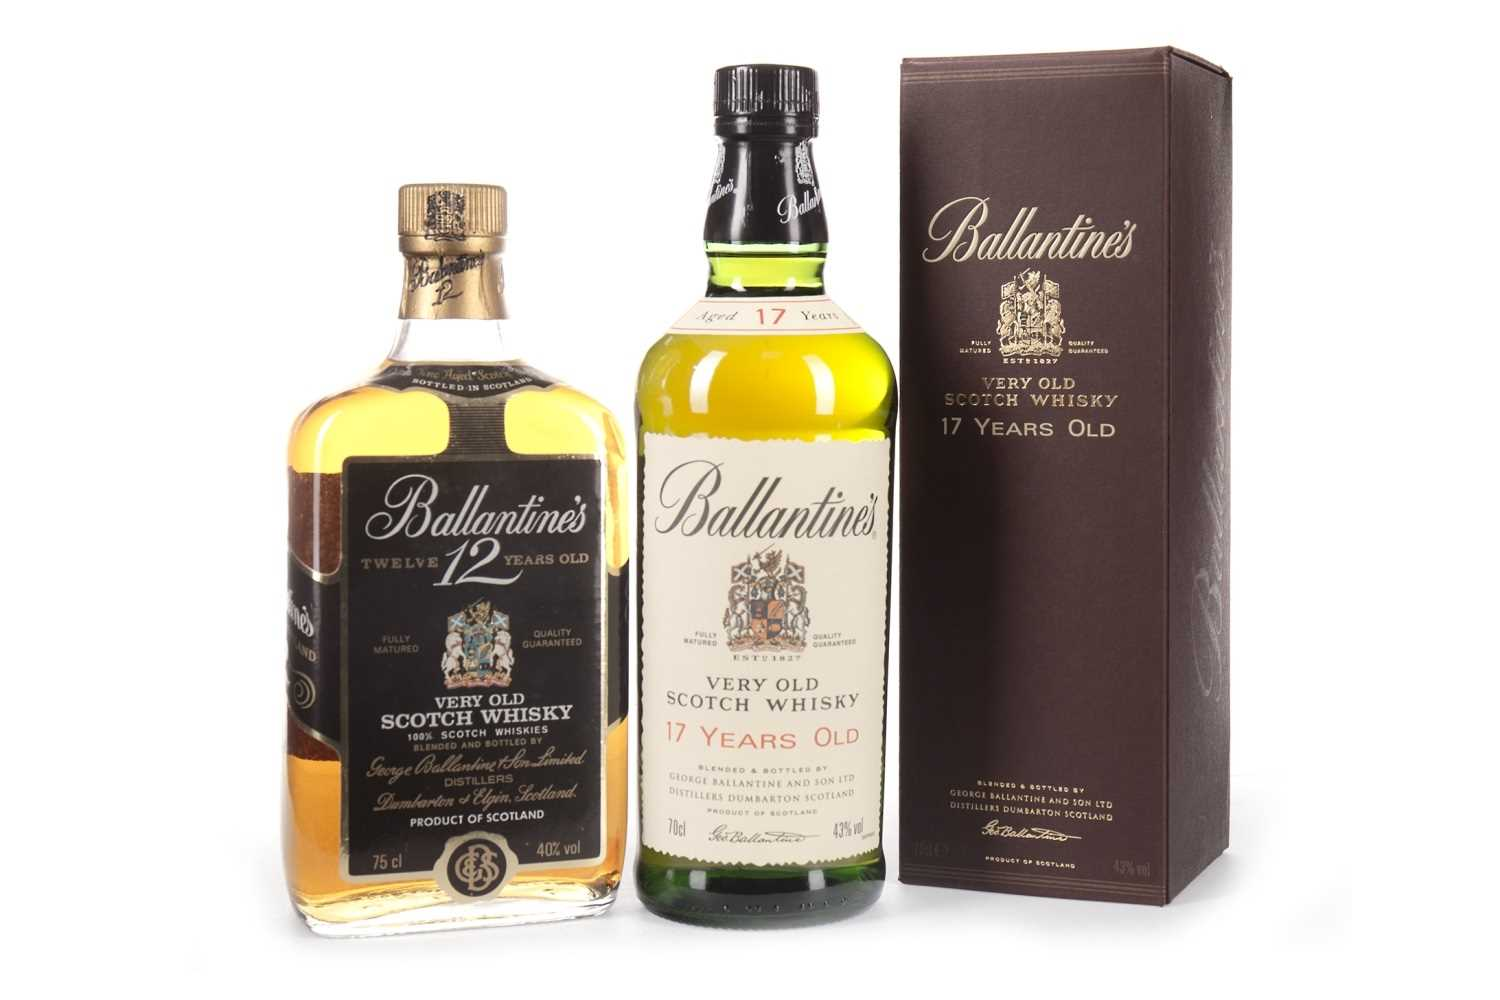 Lot 422-BALLANTINE'S 17 YEARS OLD & 12 YEARS OLD